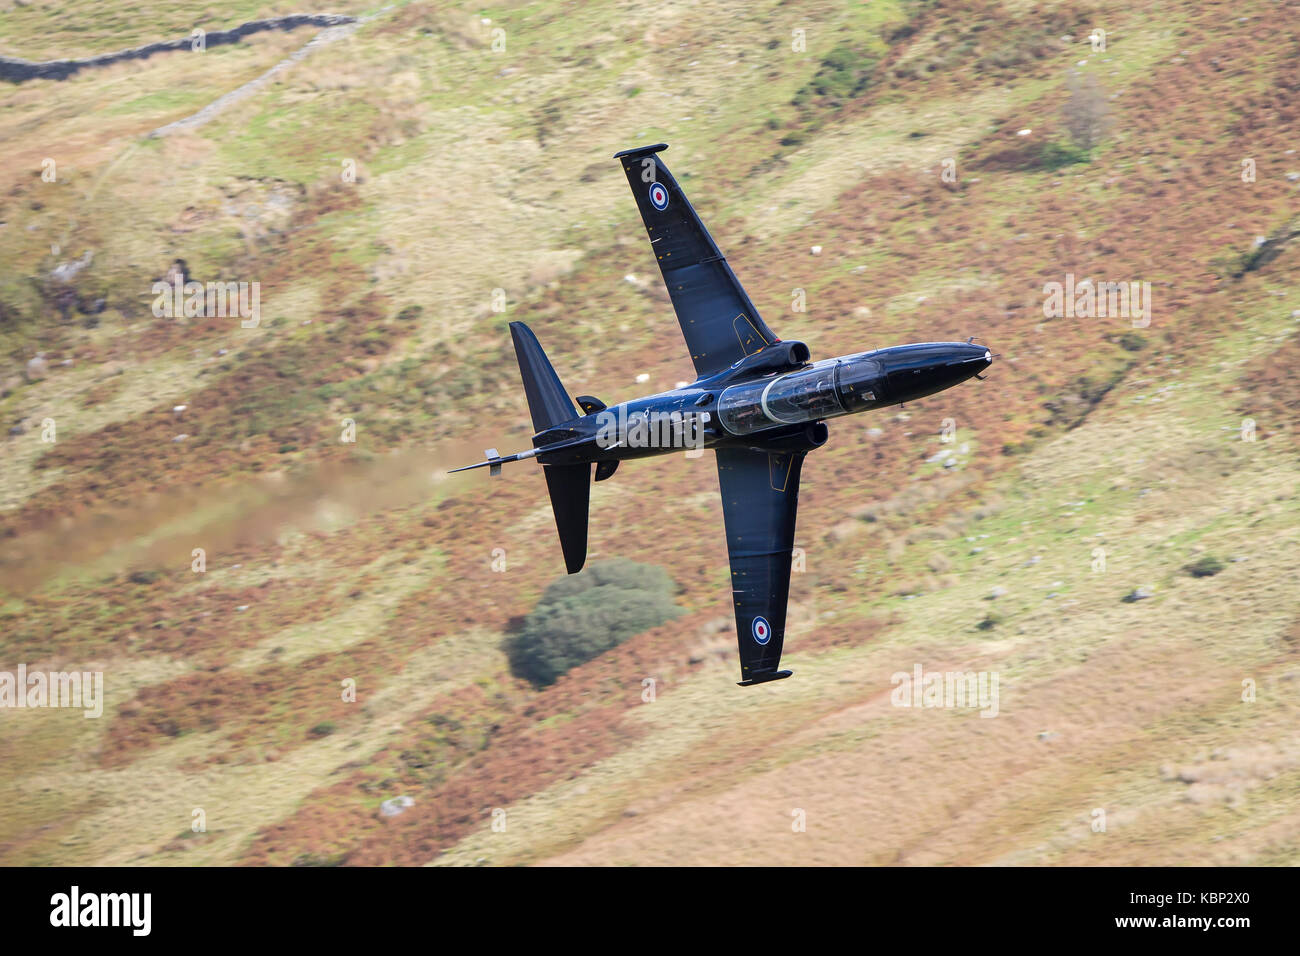 Hawk aircraft low flying through the hillside. Mid-Wales, UK. - Stock Image